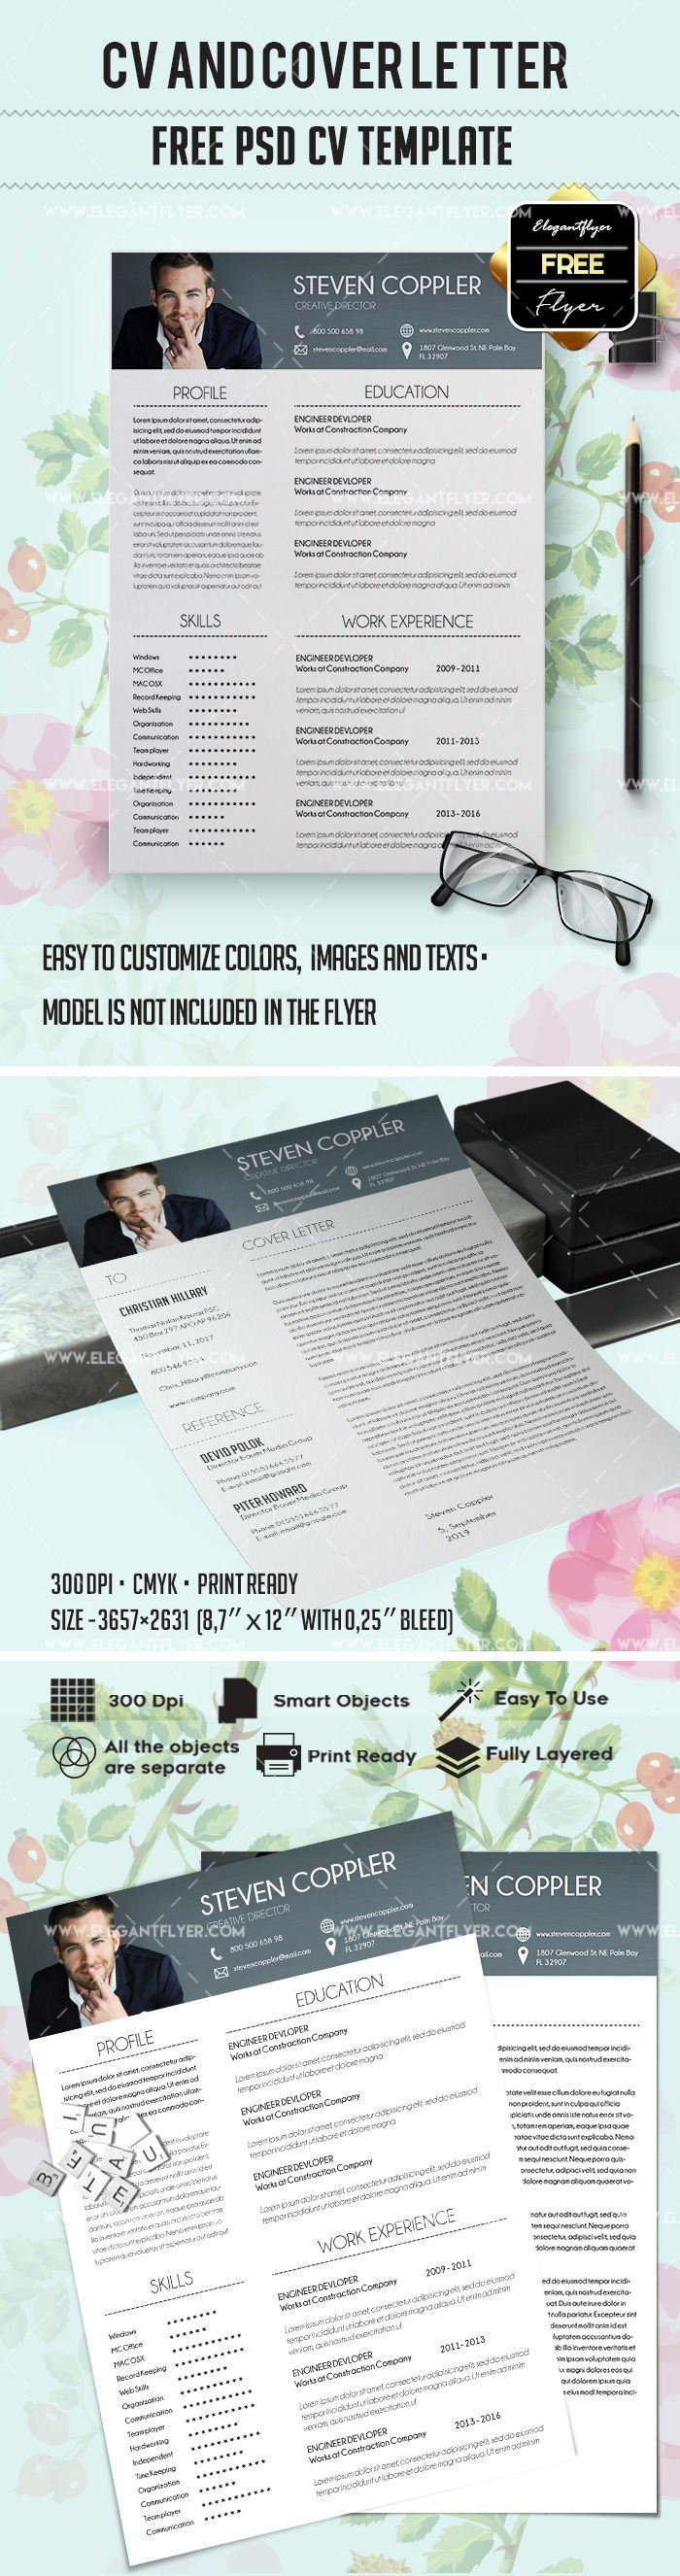 mla cover letter format%0A https   www elegantflyer com freeresumetemplates